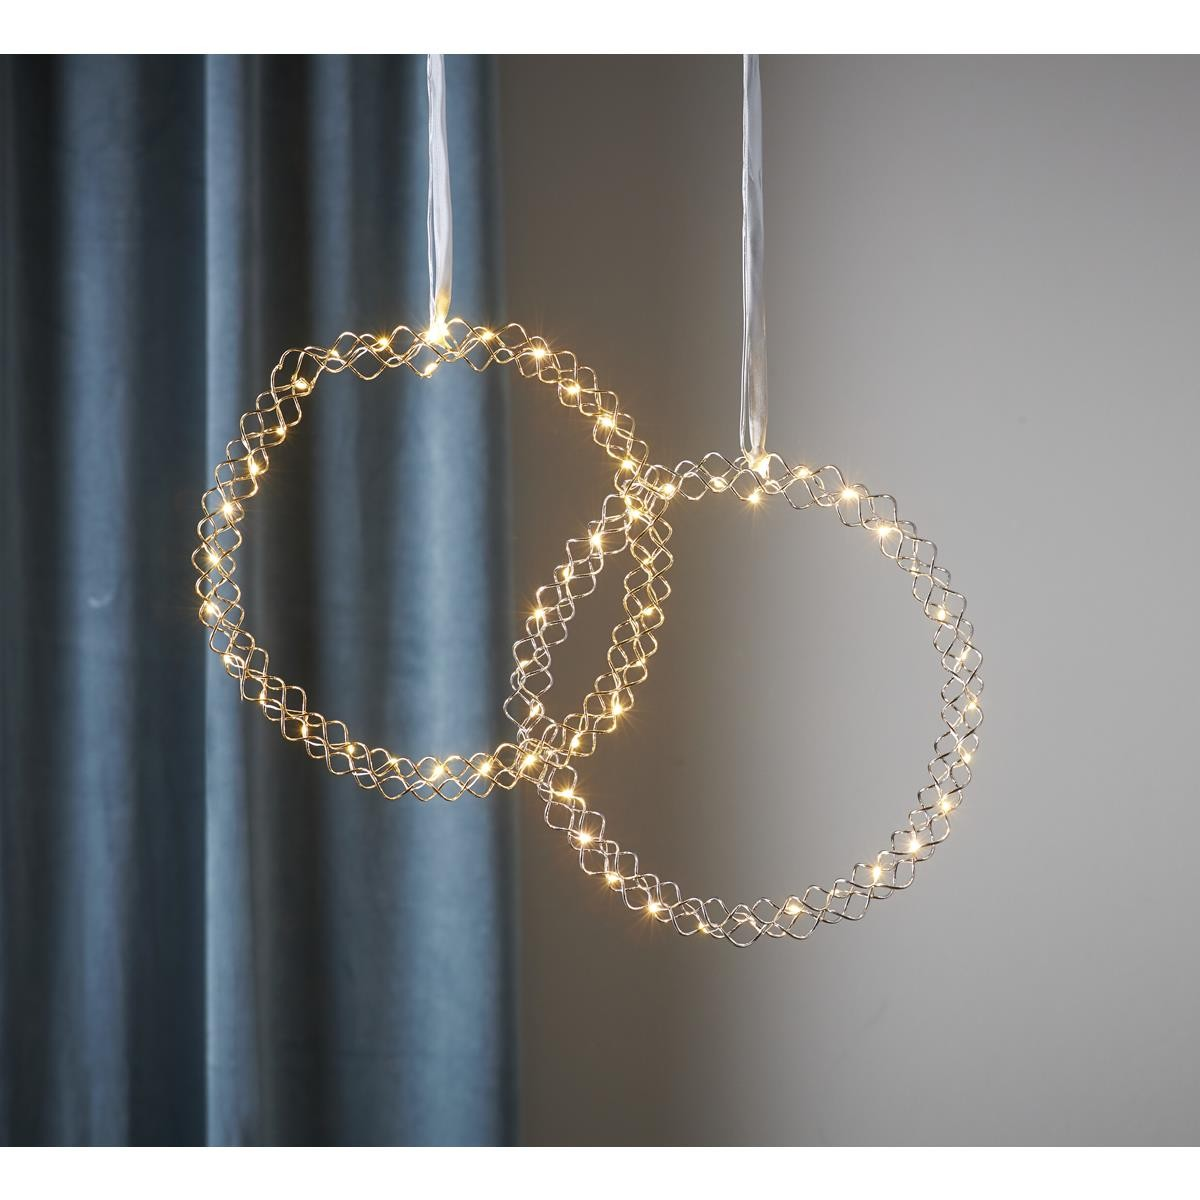 LED Kranz Hoop - 30 warmweisse LED - D: 30cm - Material: Metall - Batteriebetrieb - Timer - silber